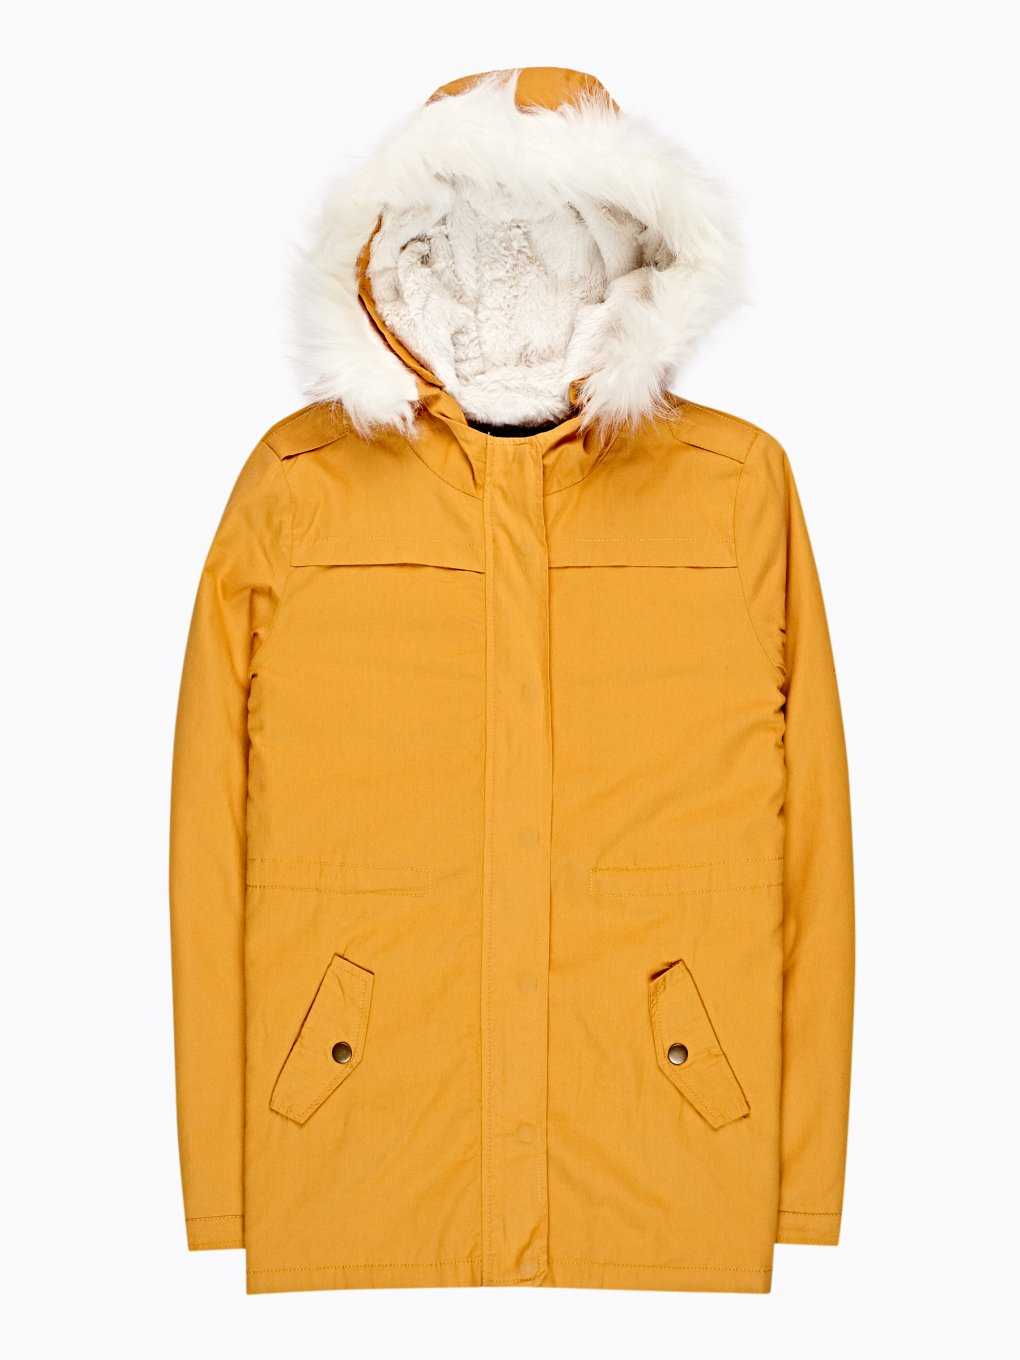 Cotton parka with pile lining and removable faux fur